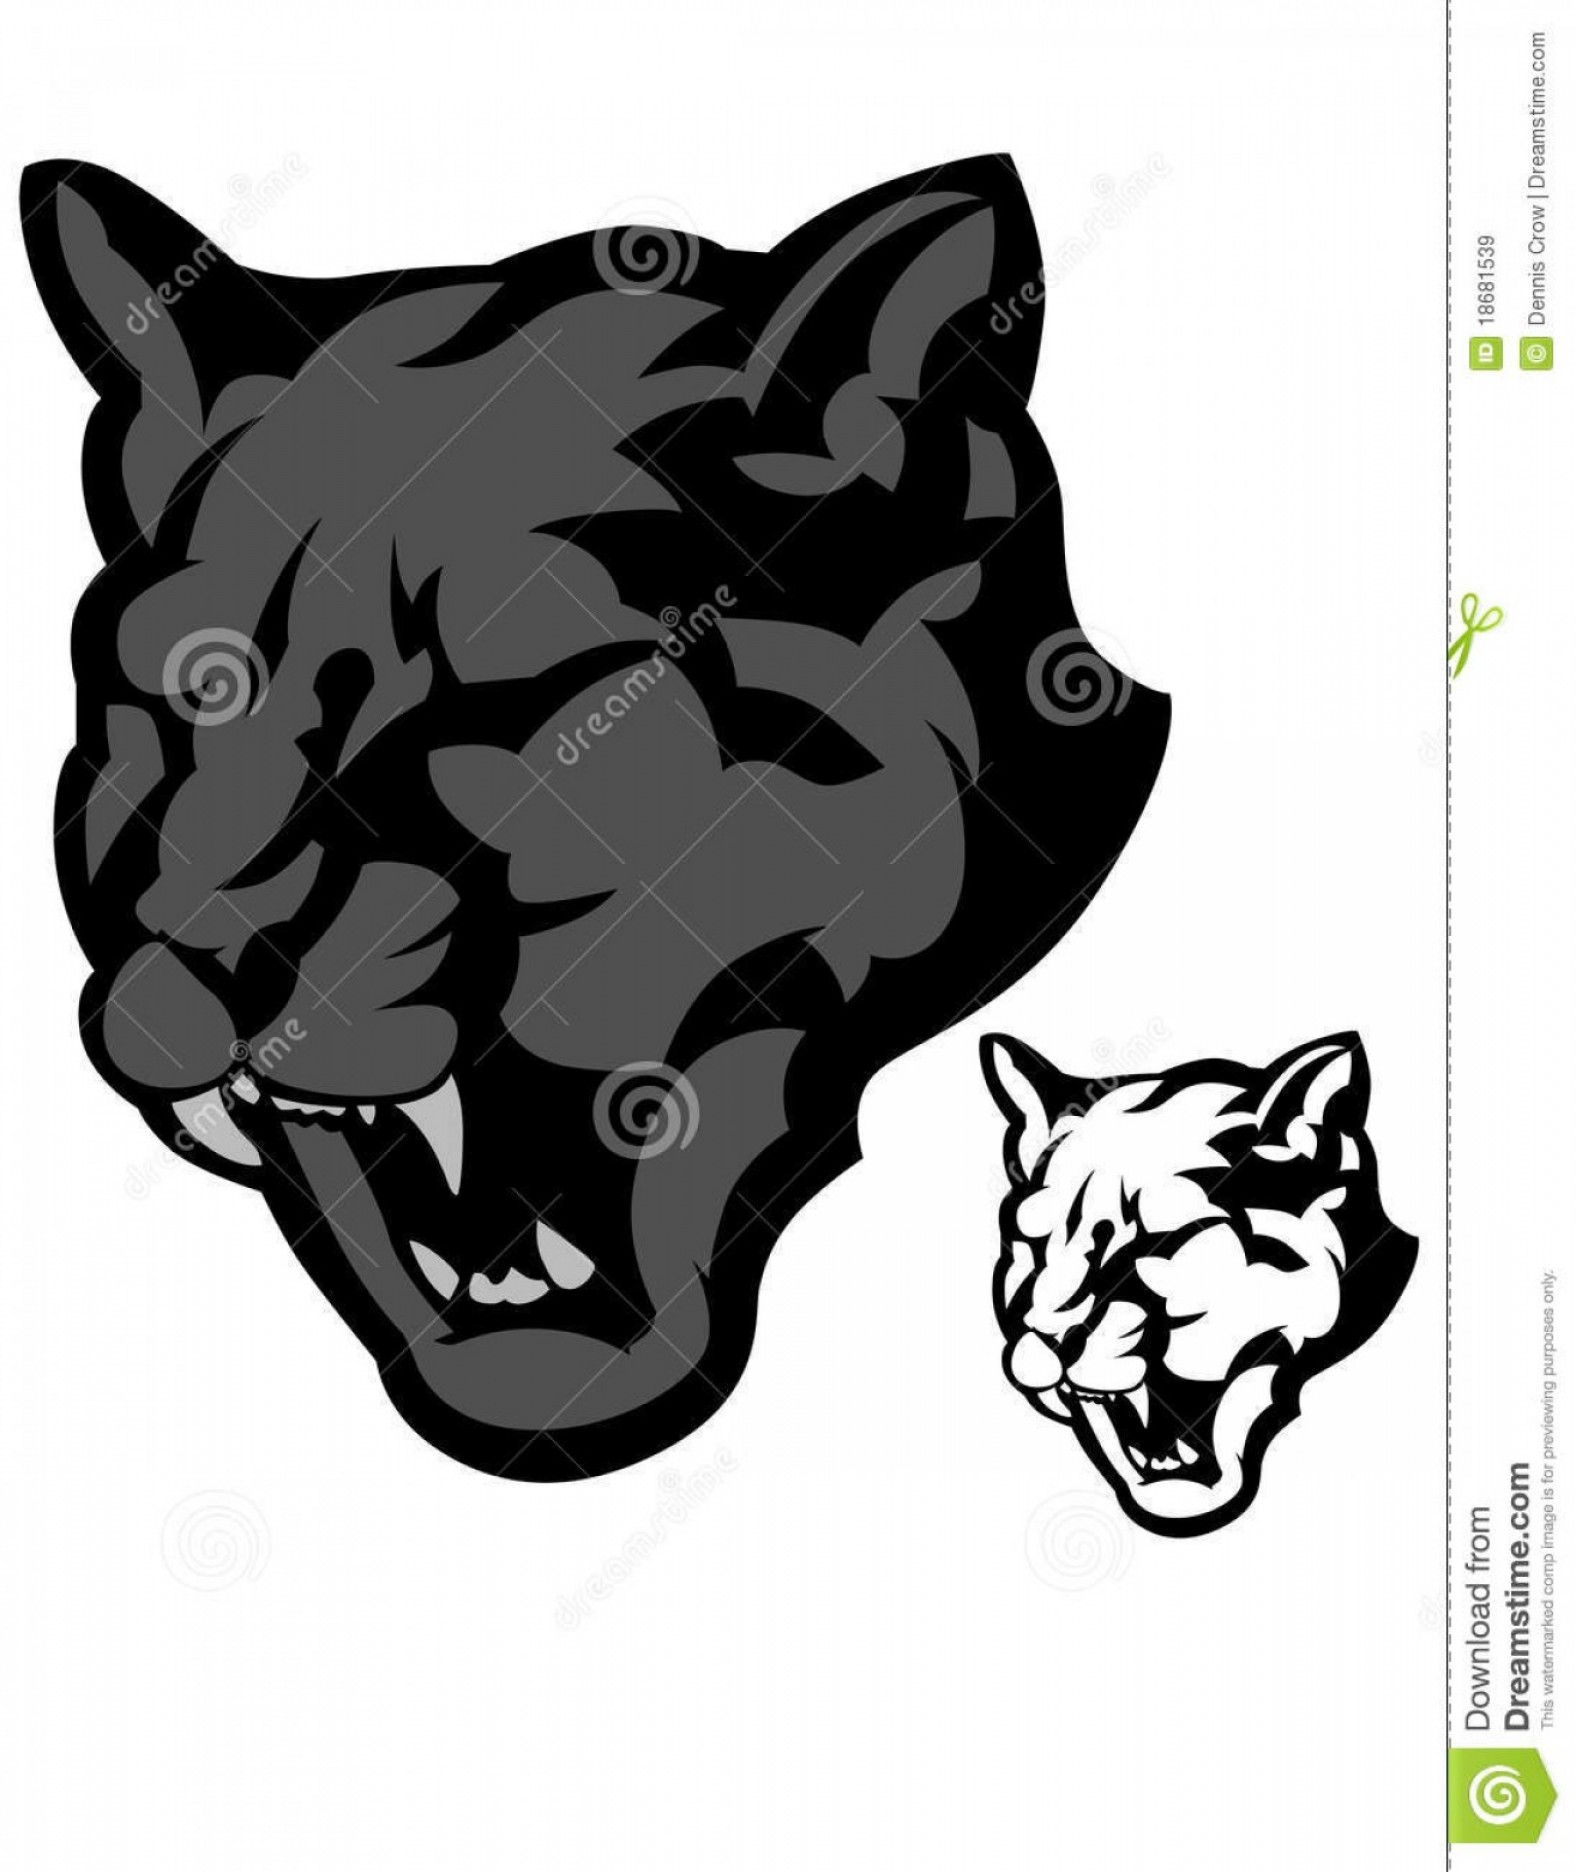 Panther Mascot Vector Sports: Royalty Free Stock Images Panther Mascot Vector Logo Image